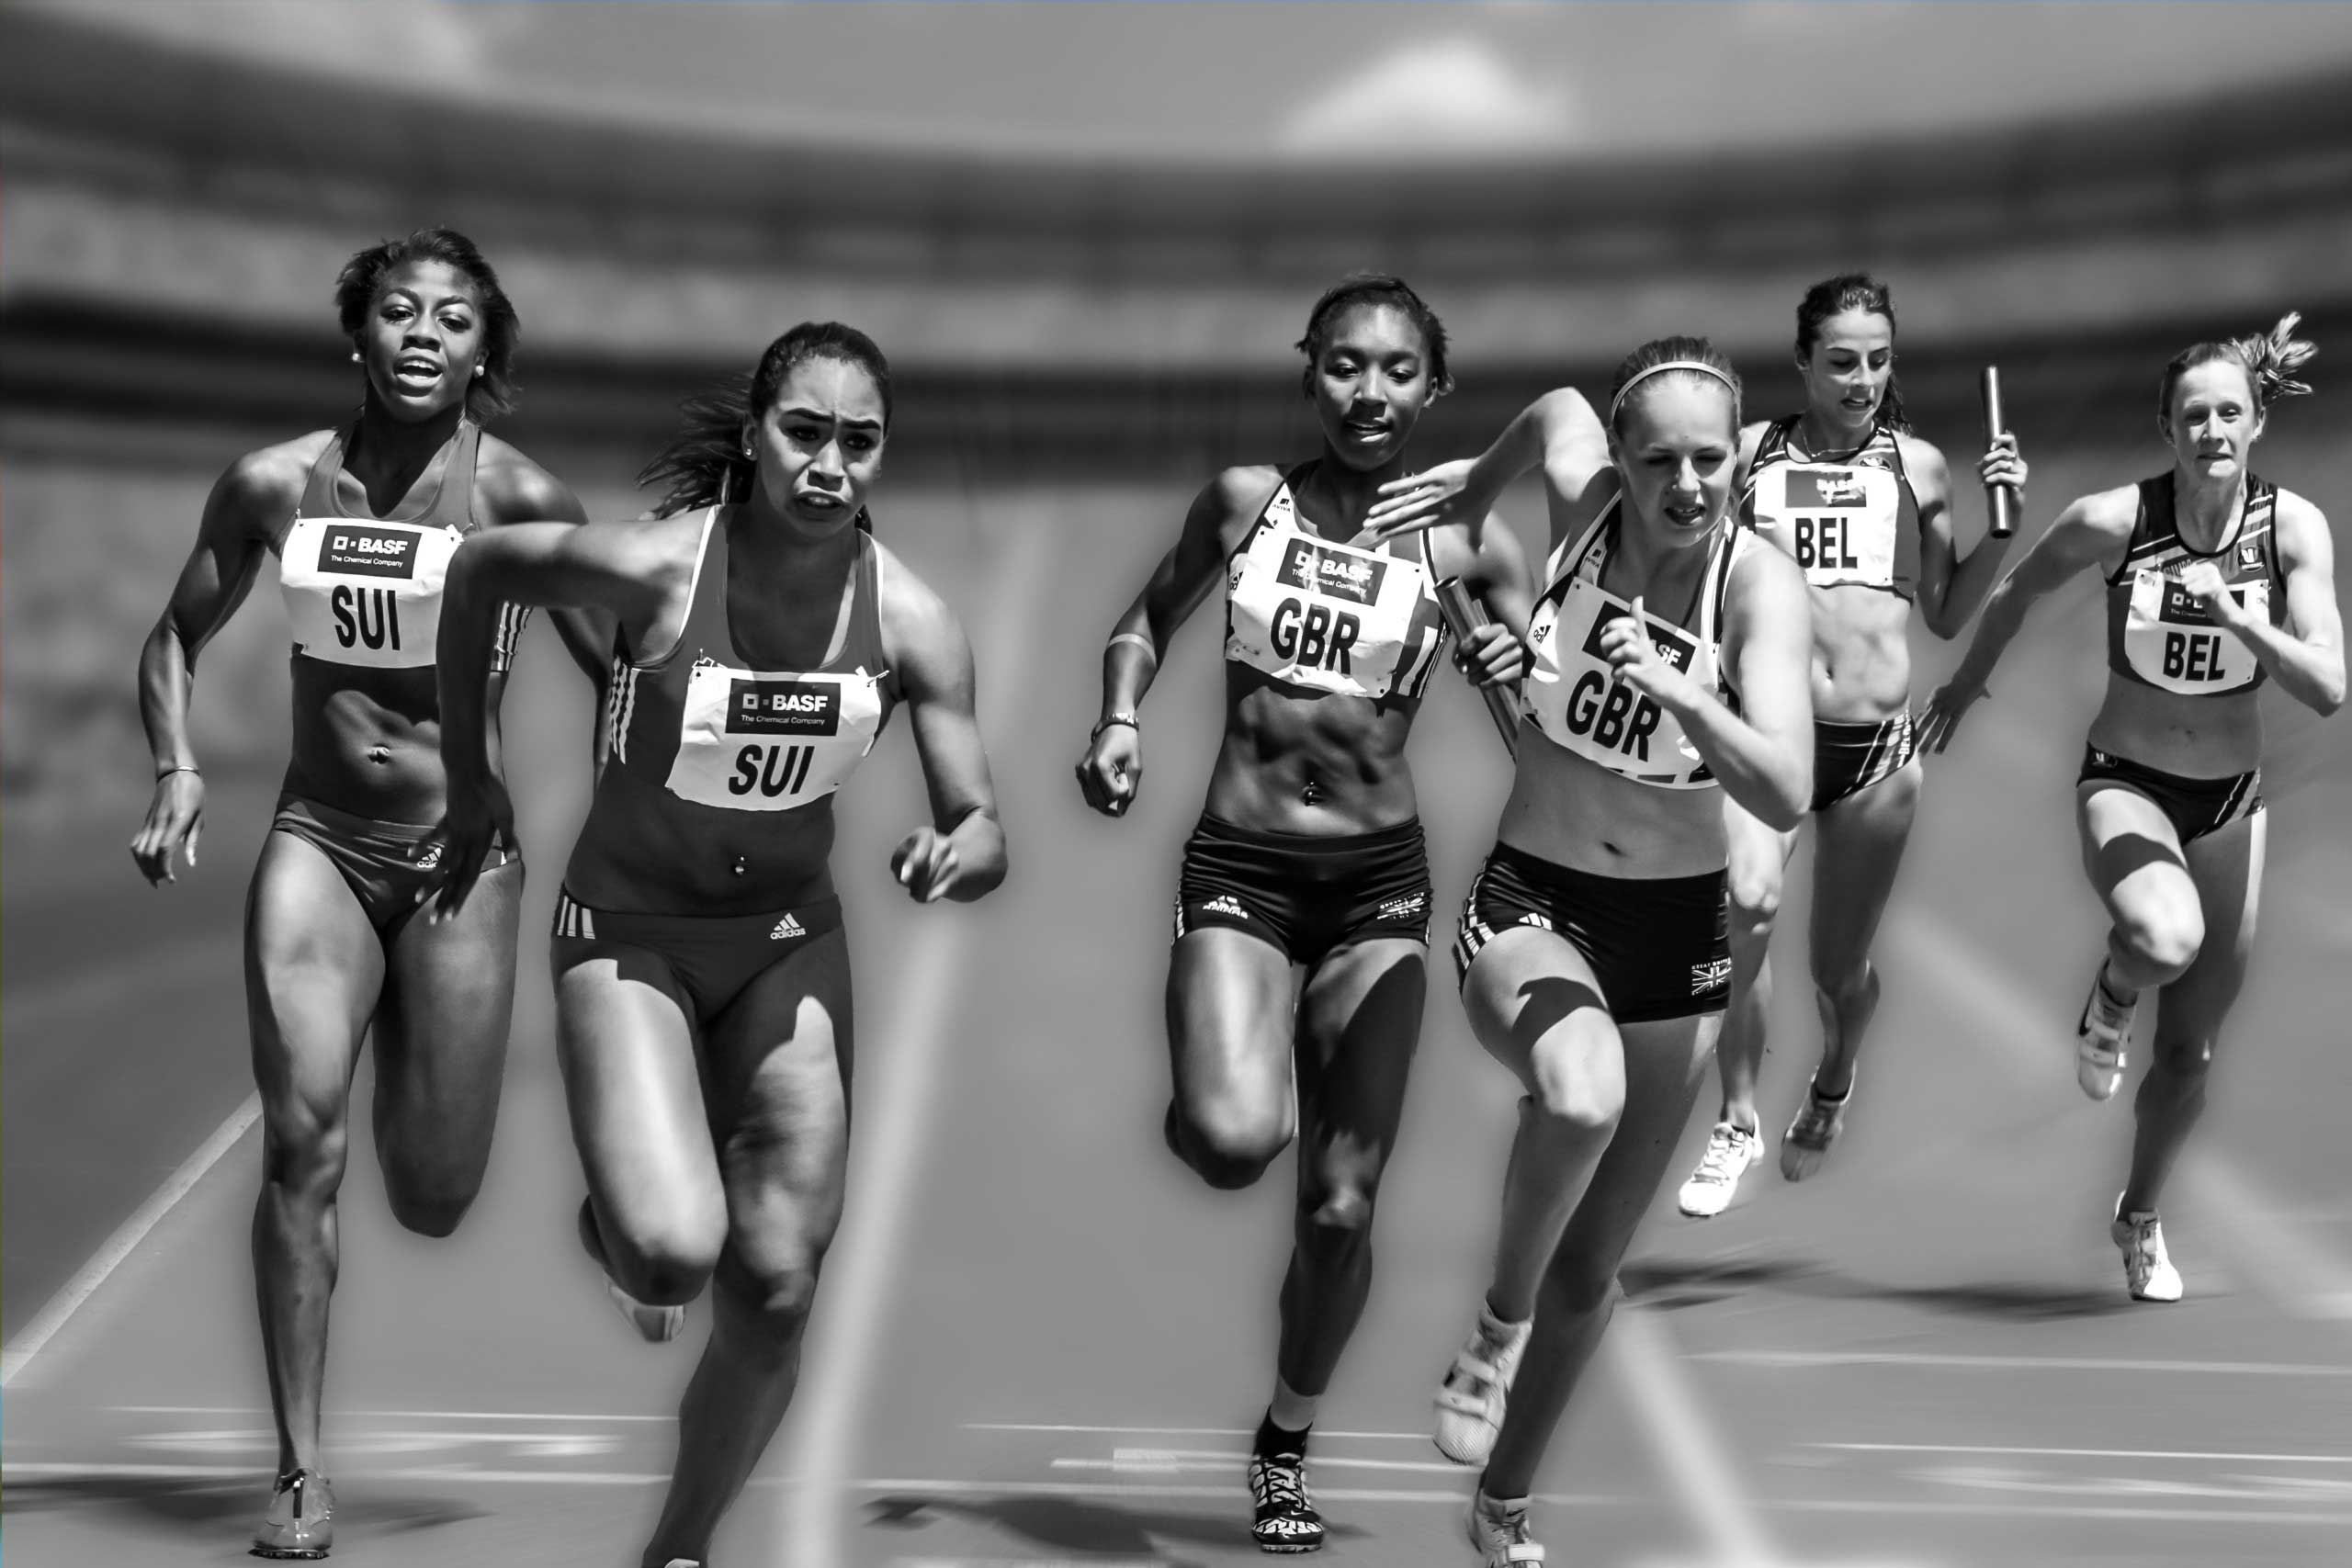 Group of women running on a race track